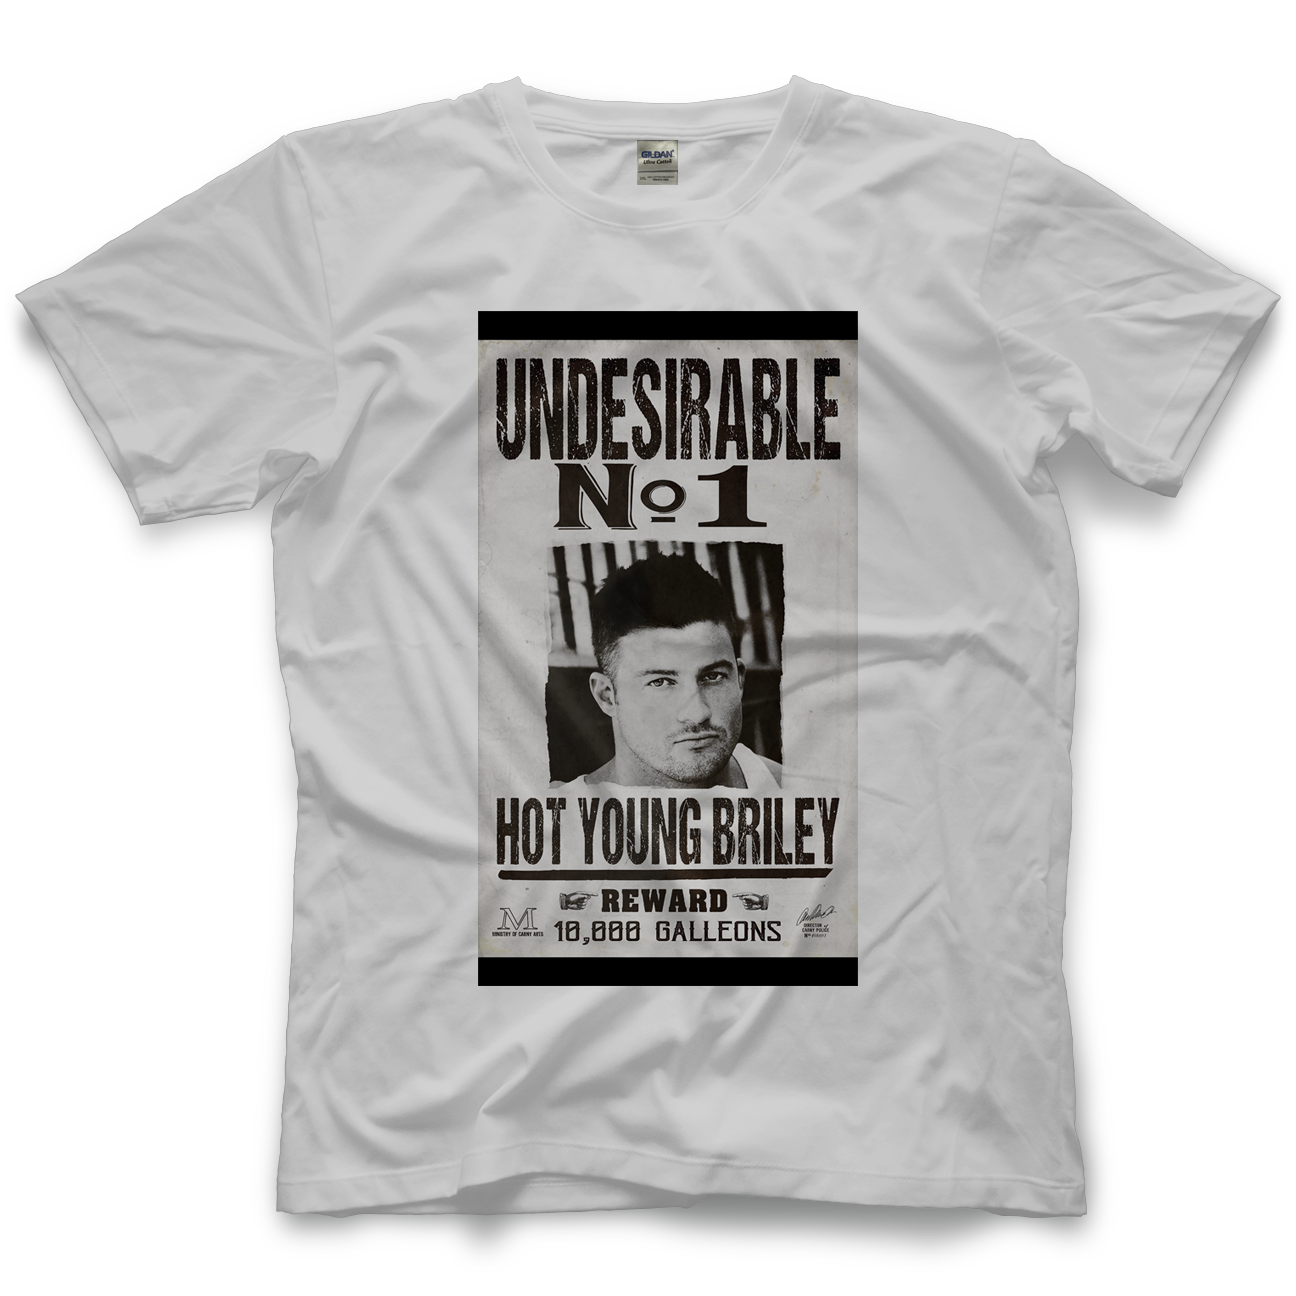 Undesirable #1